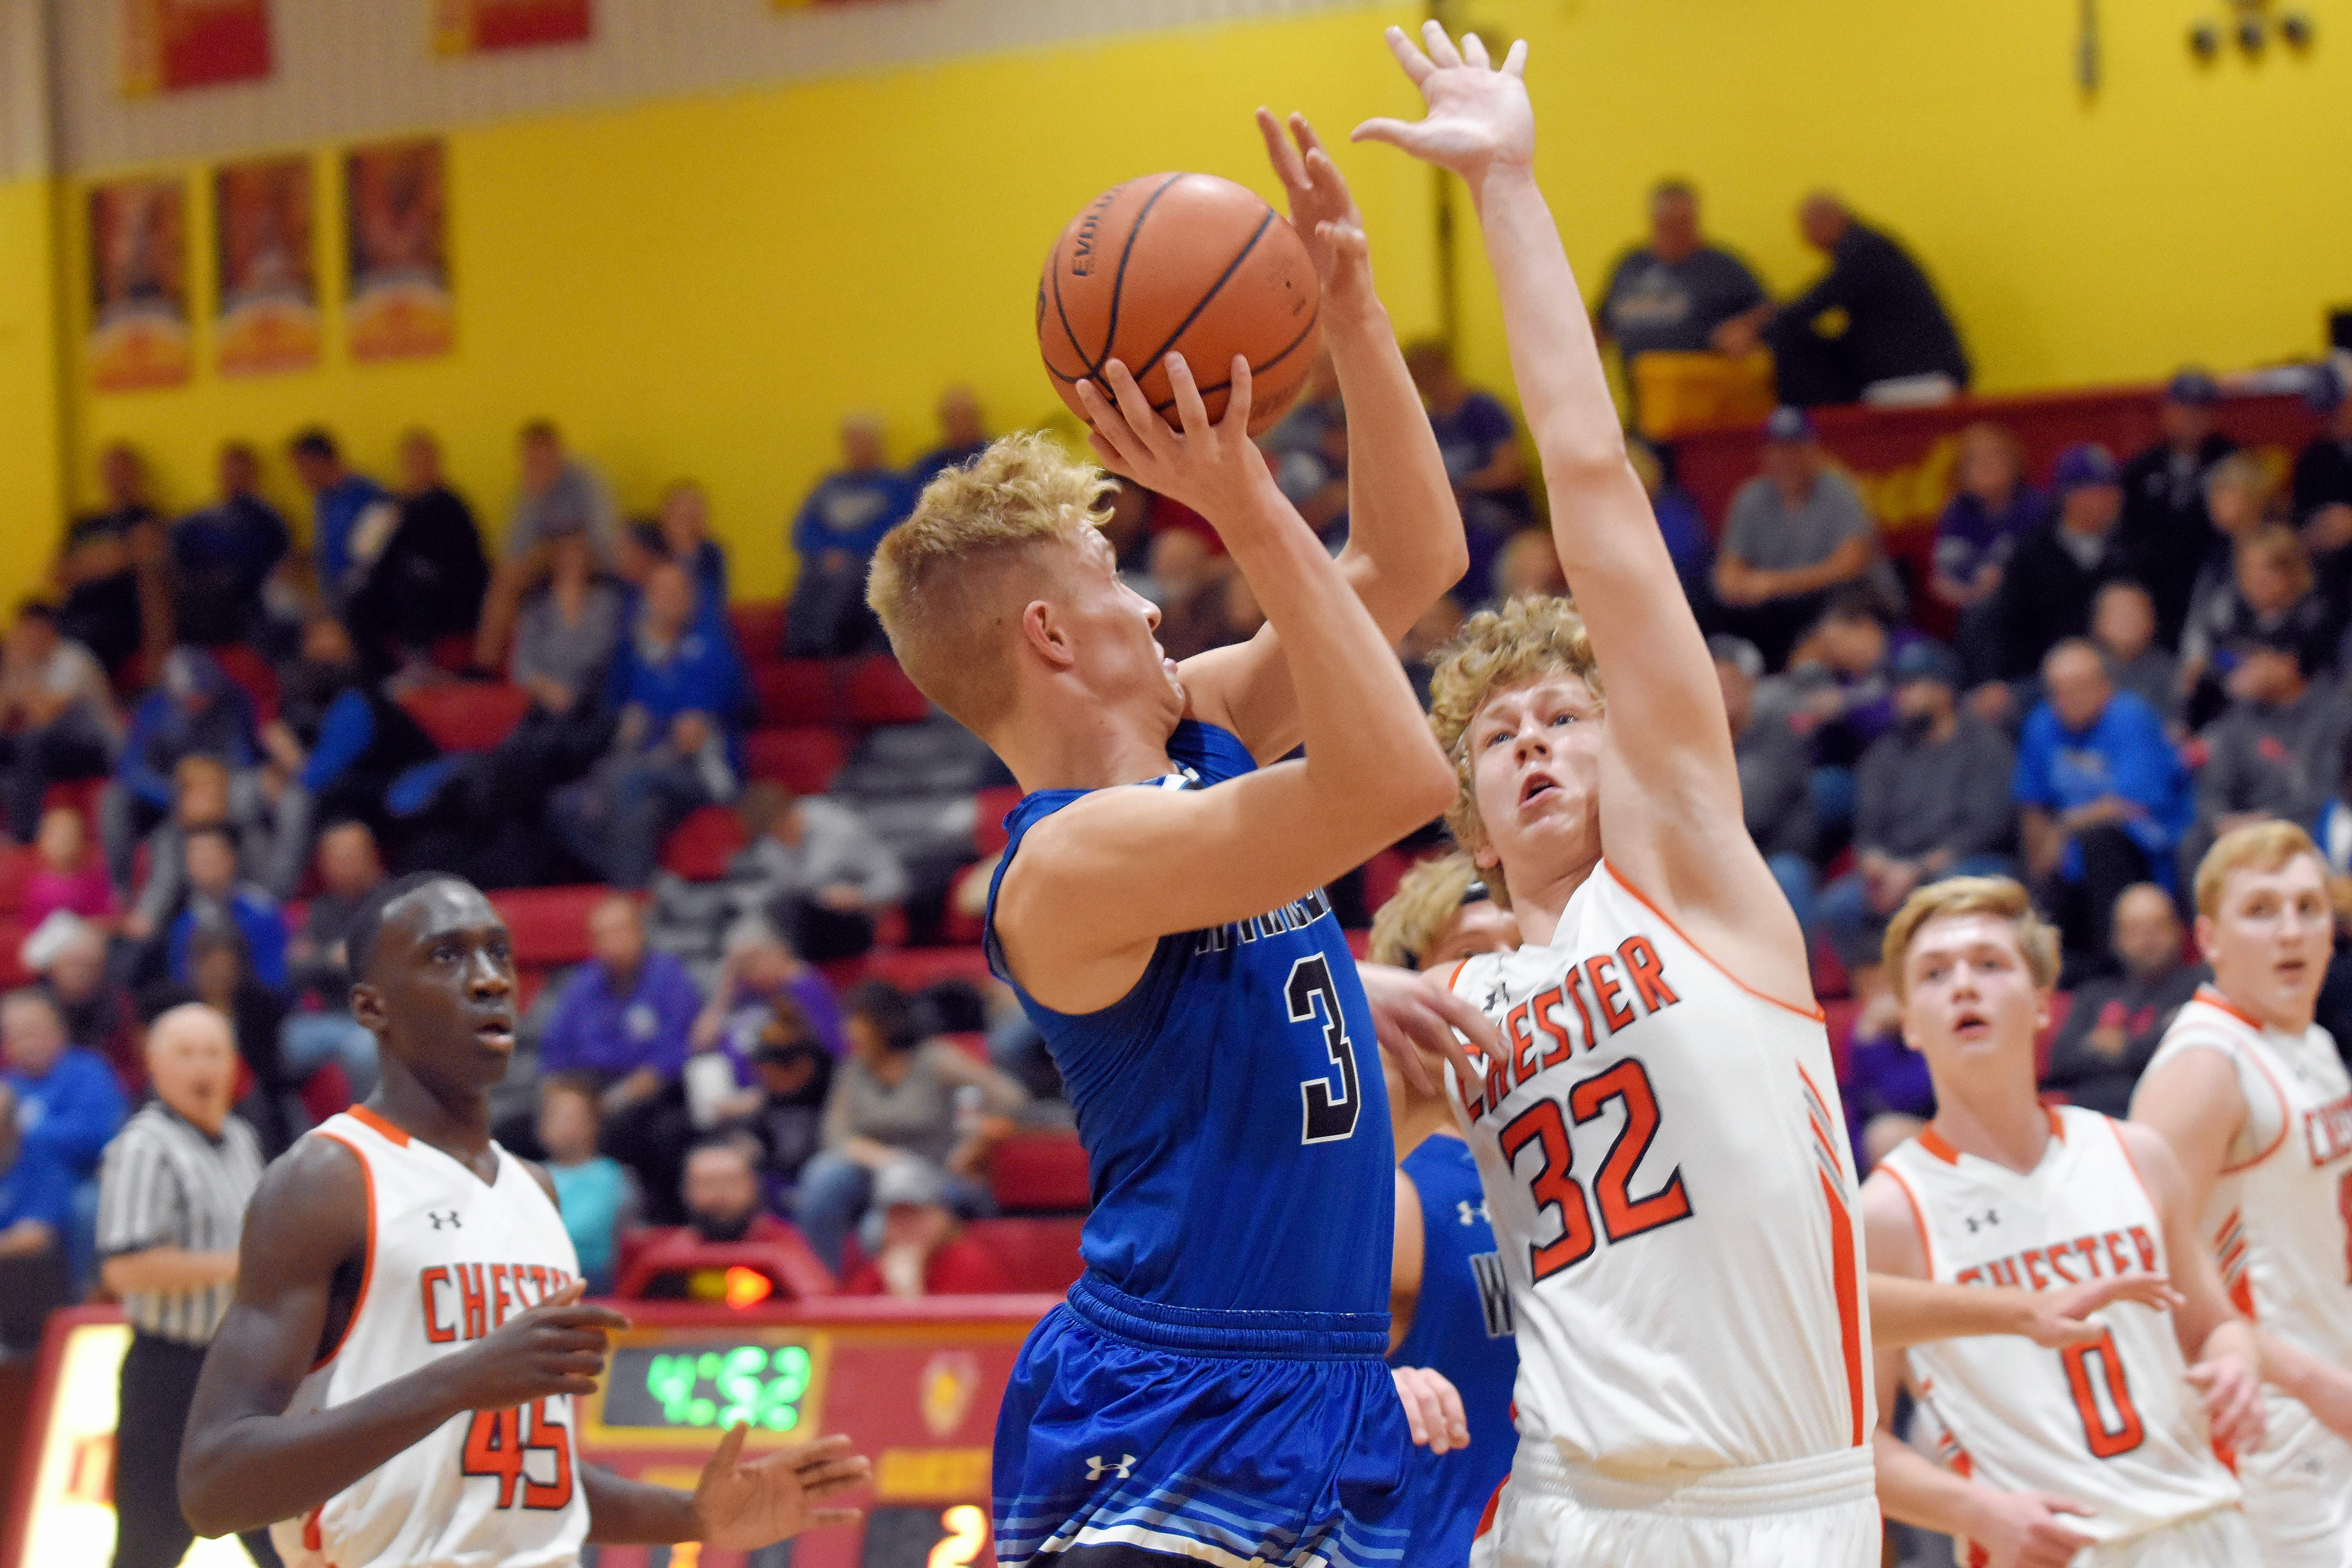 Steeleville's Owen Gross (left) looks to take a shot over Chester's Ian Reith (32). Gross led the Warriors with 28 points in Chester's 59-52 win.